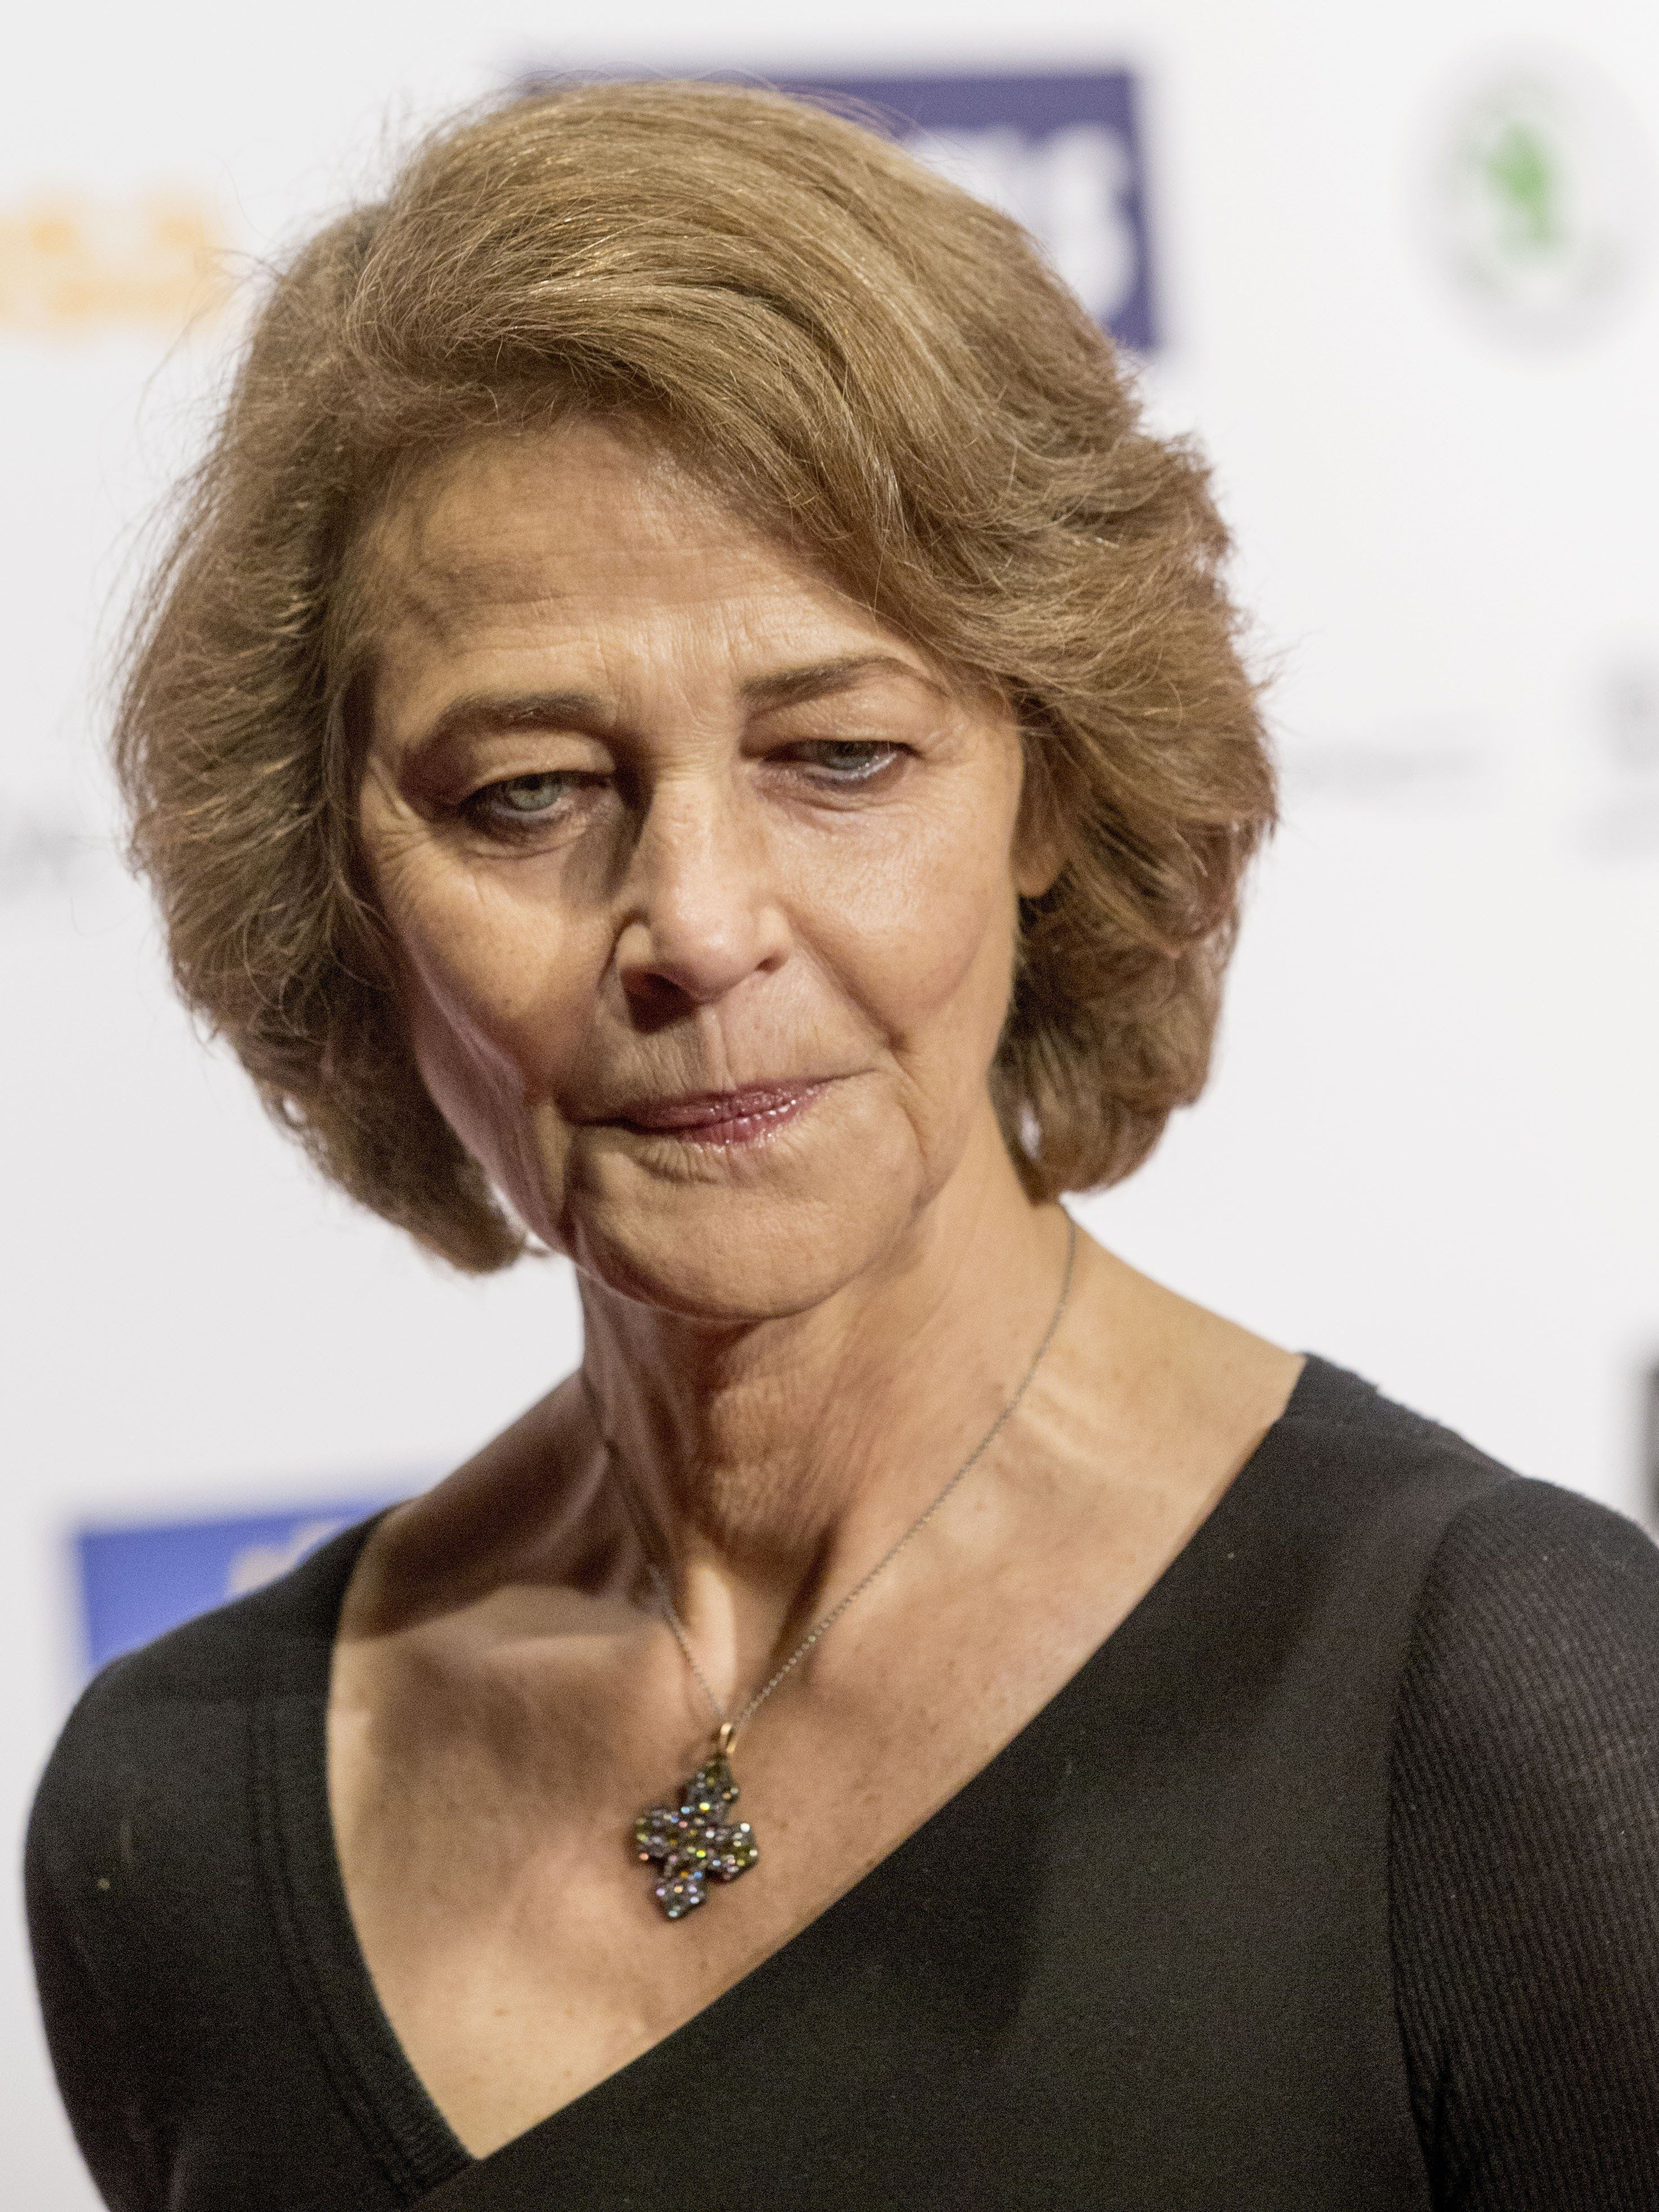 BERLIN, GERMANY - DECEMBER 12: British actress Charlotte Rampling poses for photographers as she arrives for the 28th European Film Award ceremony in Berlin on December 12, 2015. (Photo by Mehmet Kaman/Anadolu Agency/Getty Images)